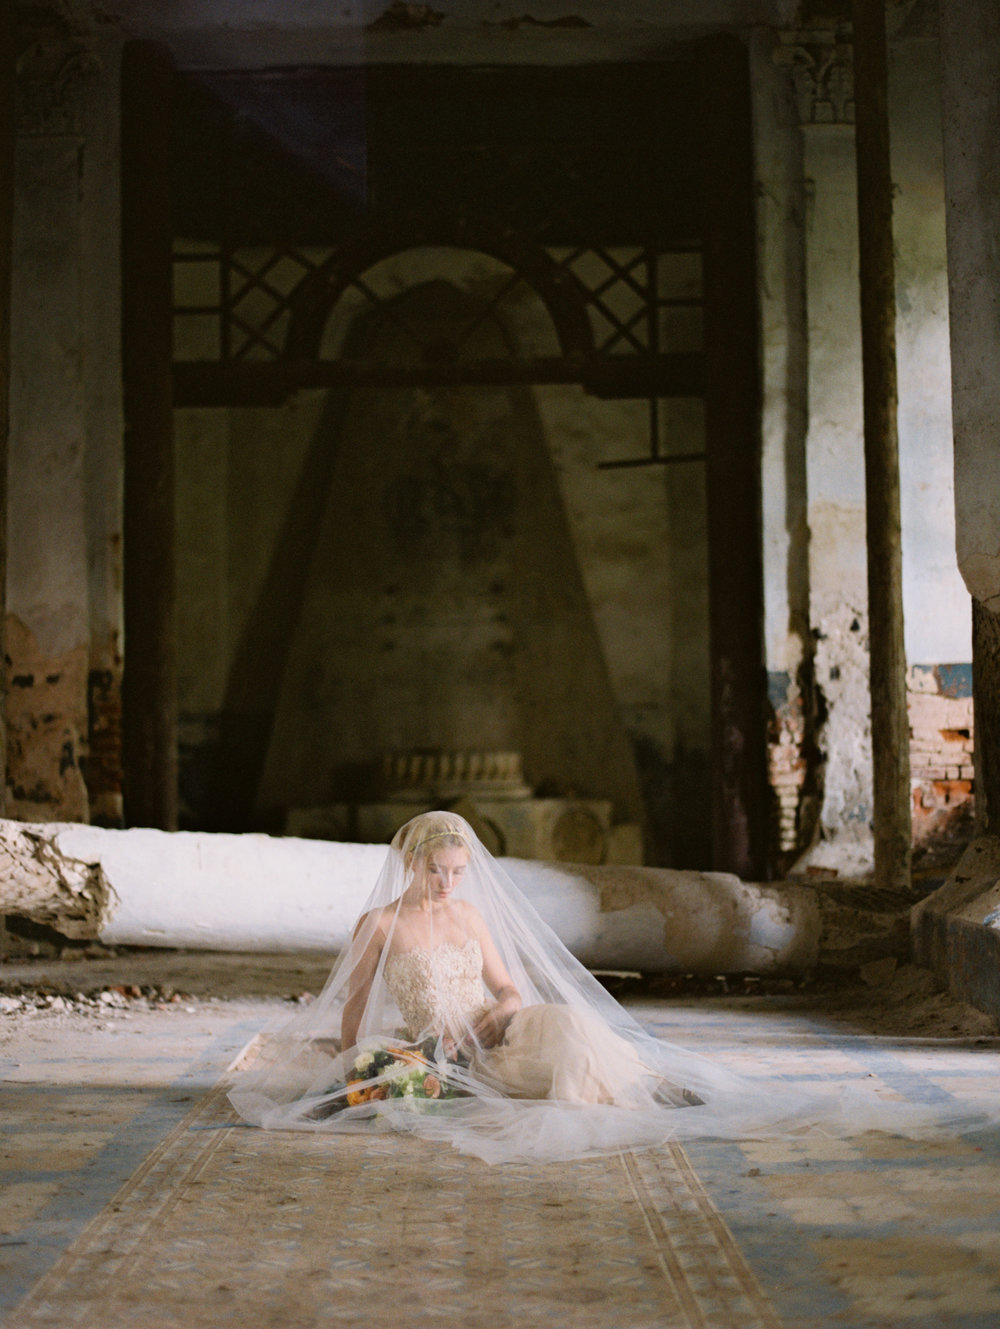 wedding-styled-shoot-russia-inspiration-elena-pavlova-photography-metamorphoses-orpheus-eurydice (1).jpg